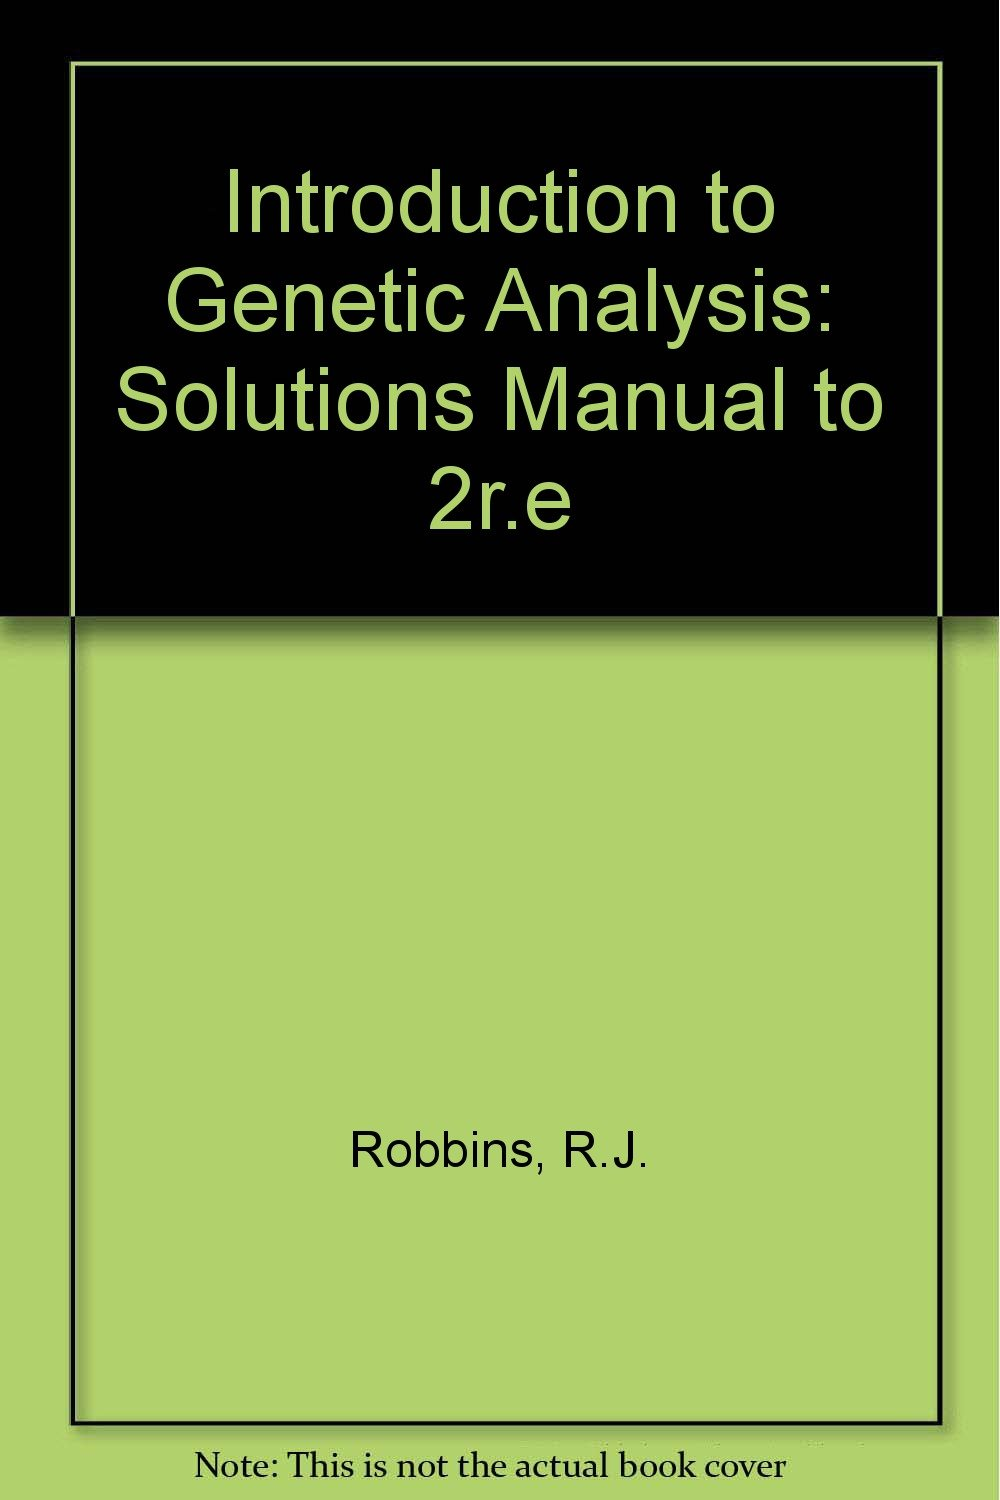 Introduction to Genetic Analysis: Solutions Manual to 2r.e: R.J. Robbins,  David T. Suzuki, Anthony J.F. Griffiths: 9780716713043: Amazon.com: Books